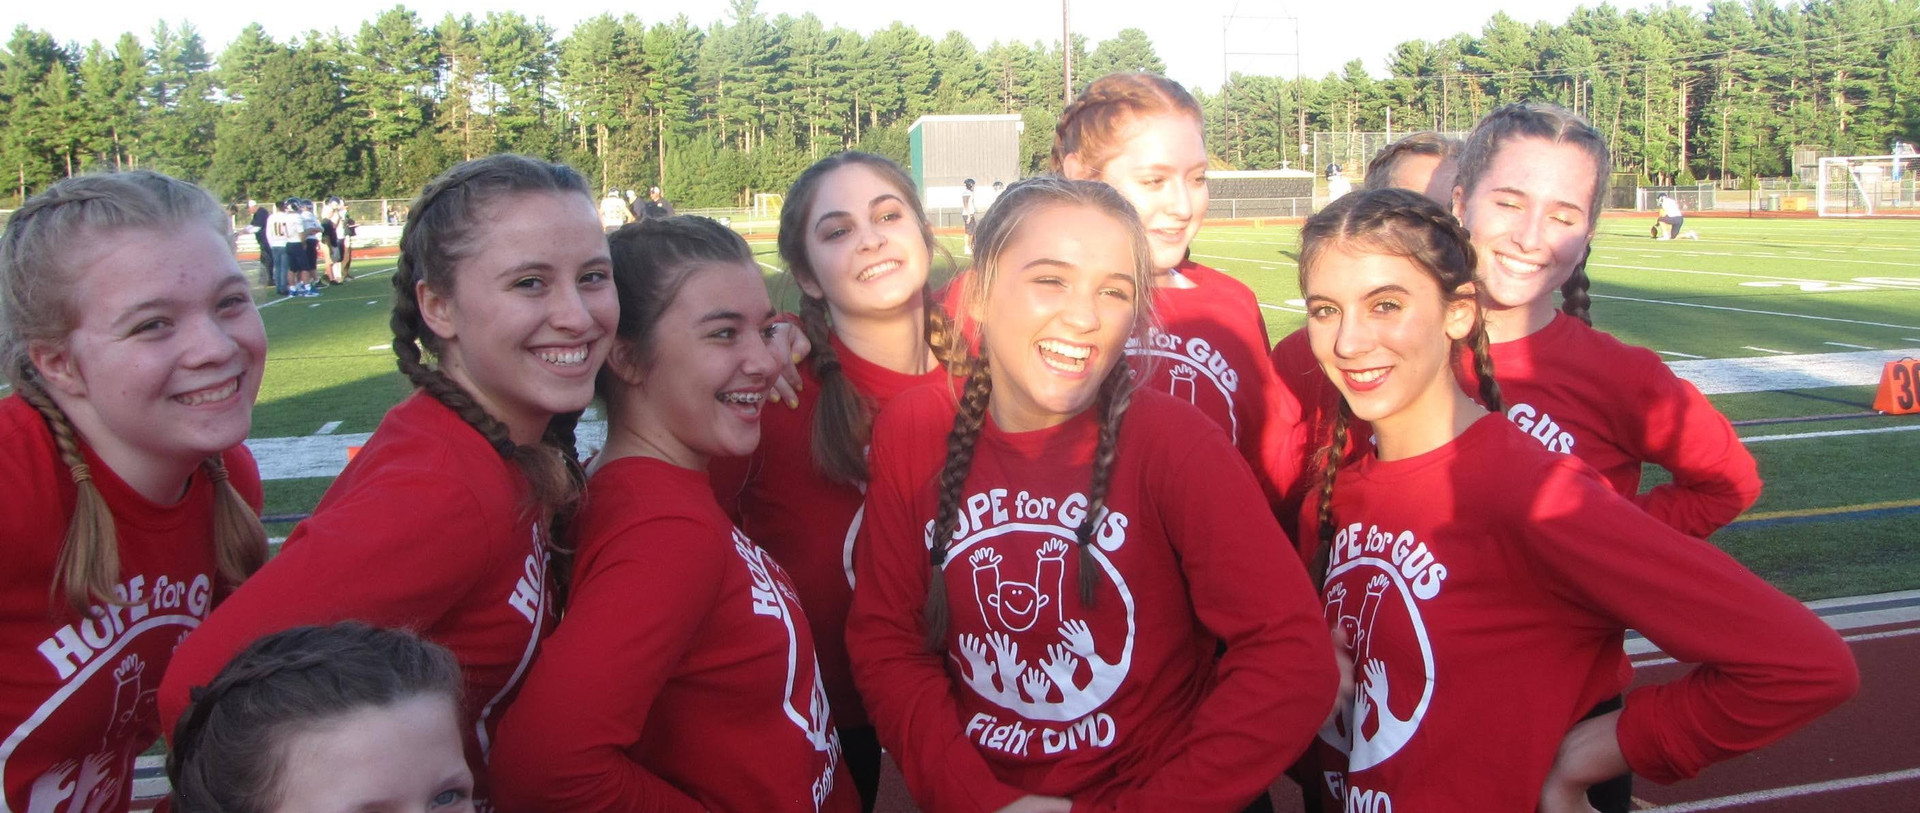 Souhegan's cheerleading team getting ready for the big game!